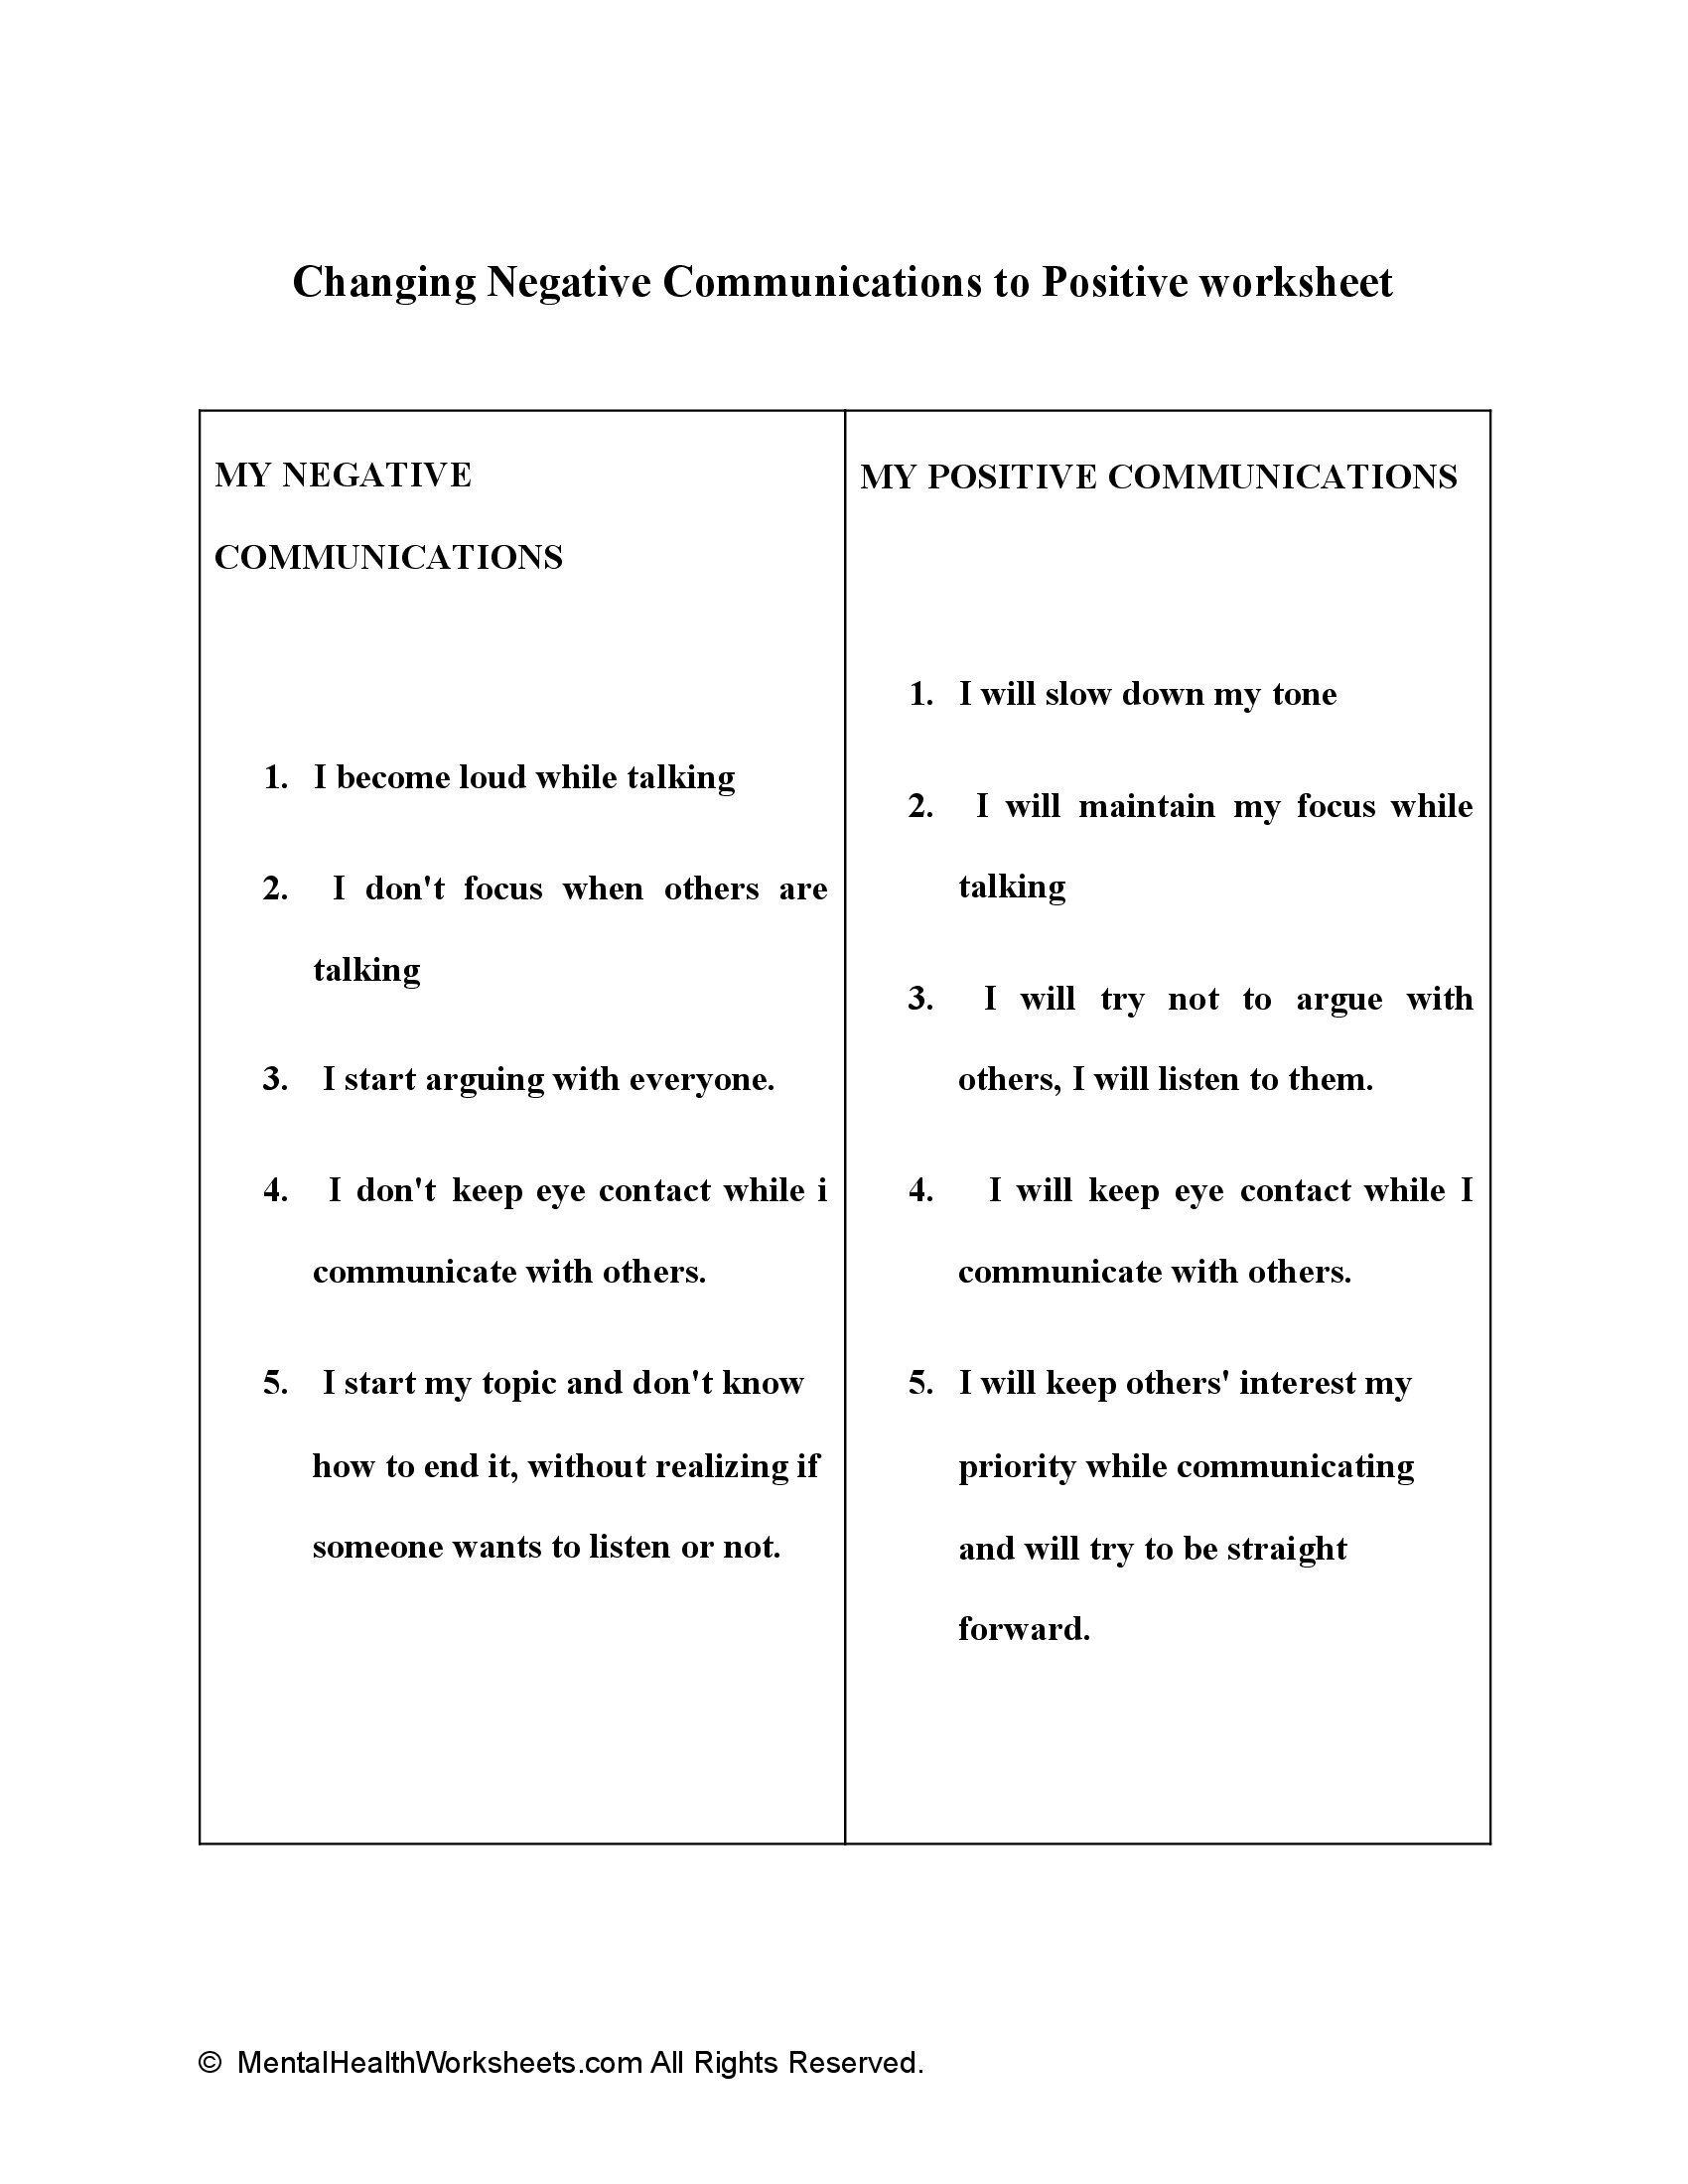 Changing Negative Communications to Positive worksheet